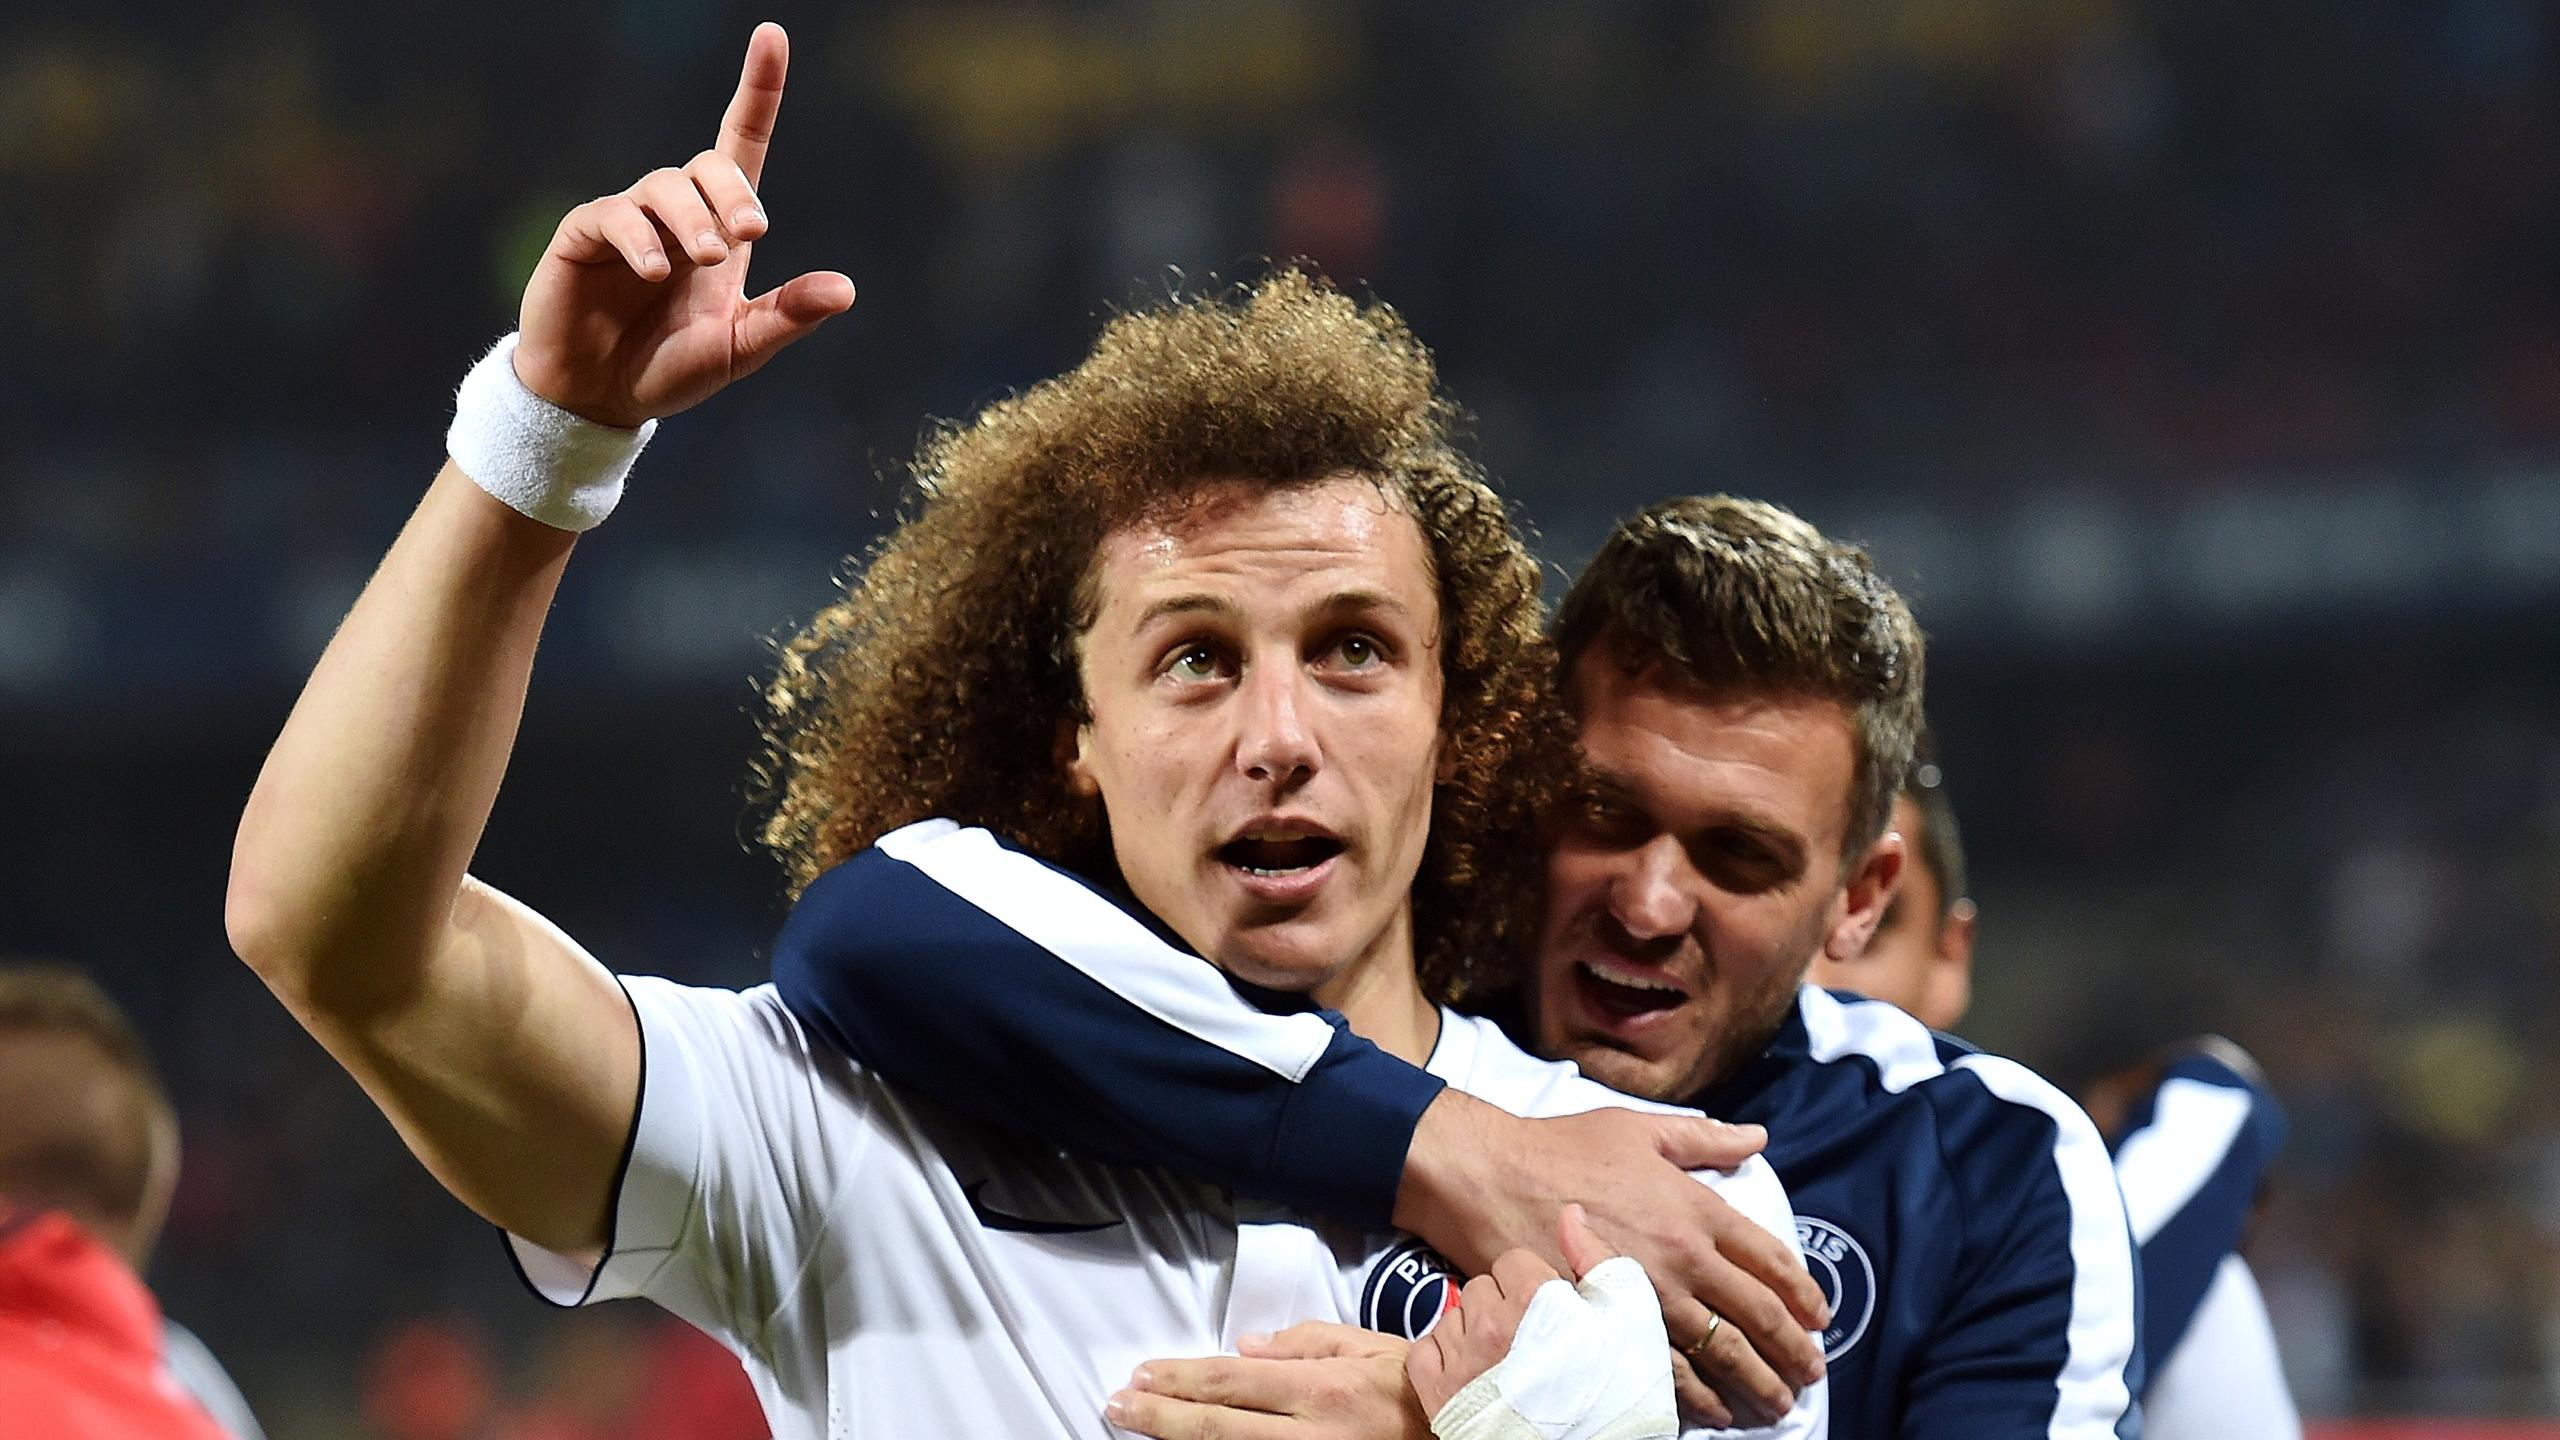 David Luiz celebrates scoring for PSG